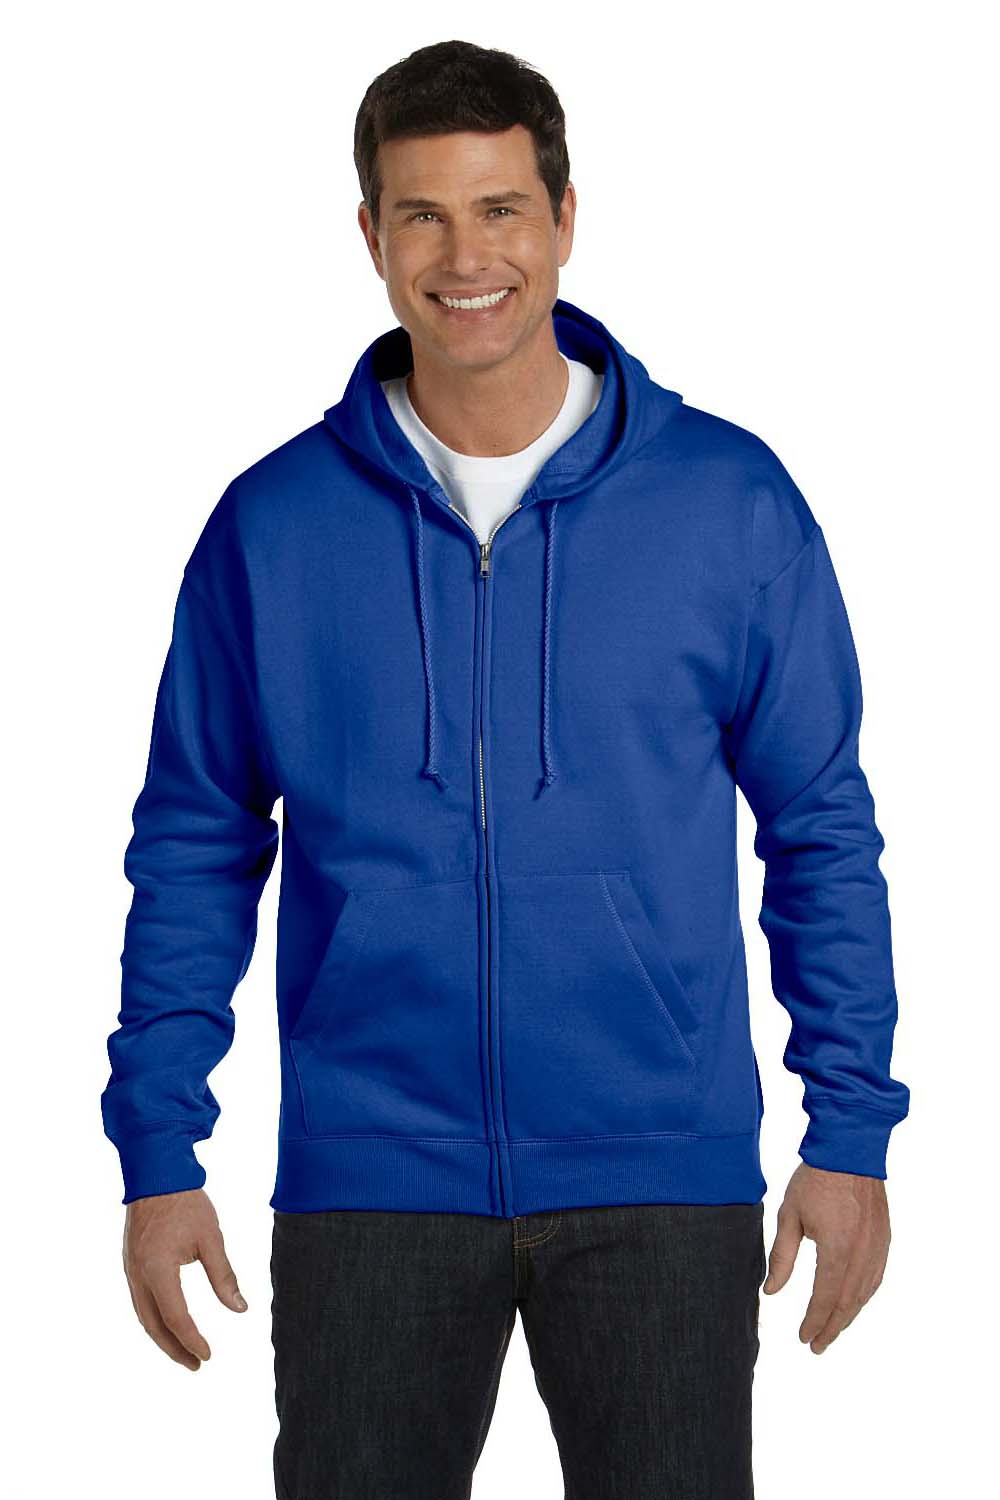 Hanes P180 Mens EcoSmart Print Pro XP Full Zip Hooded Sweatshirt Hoodie Royal Blue Front